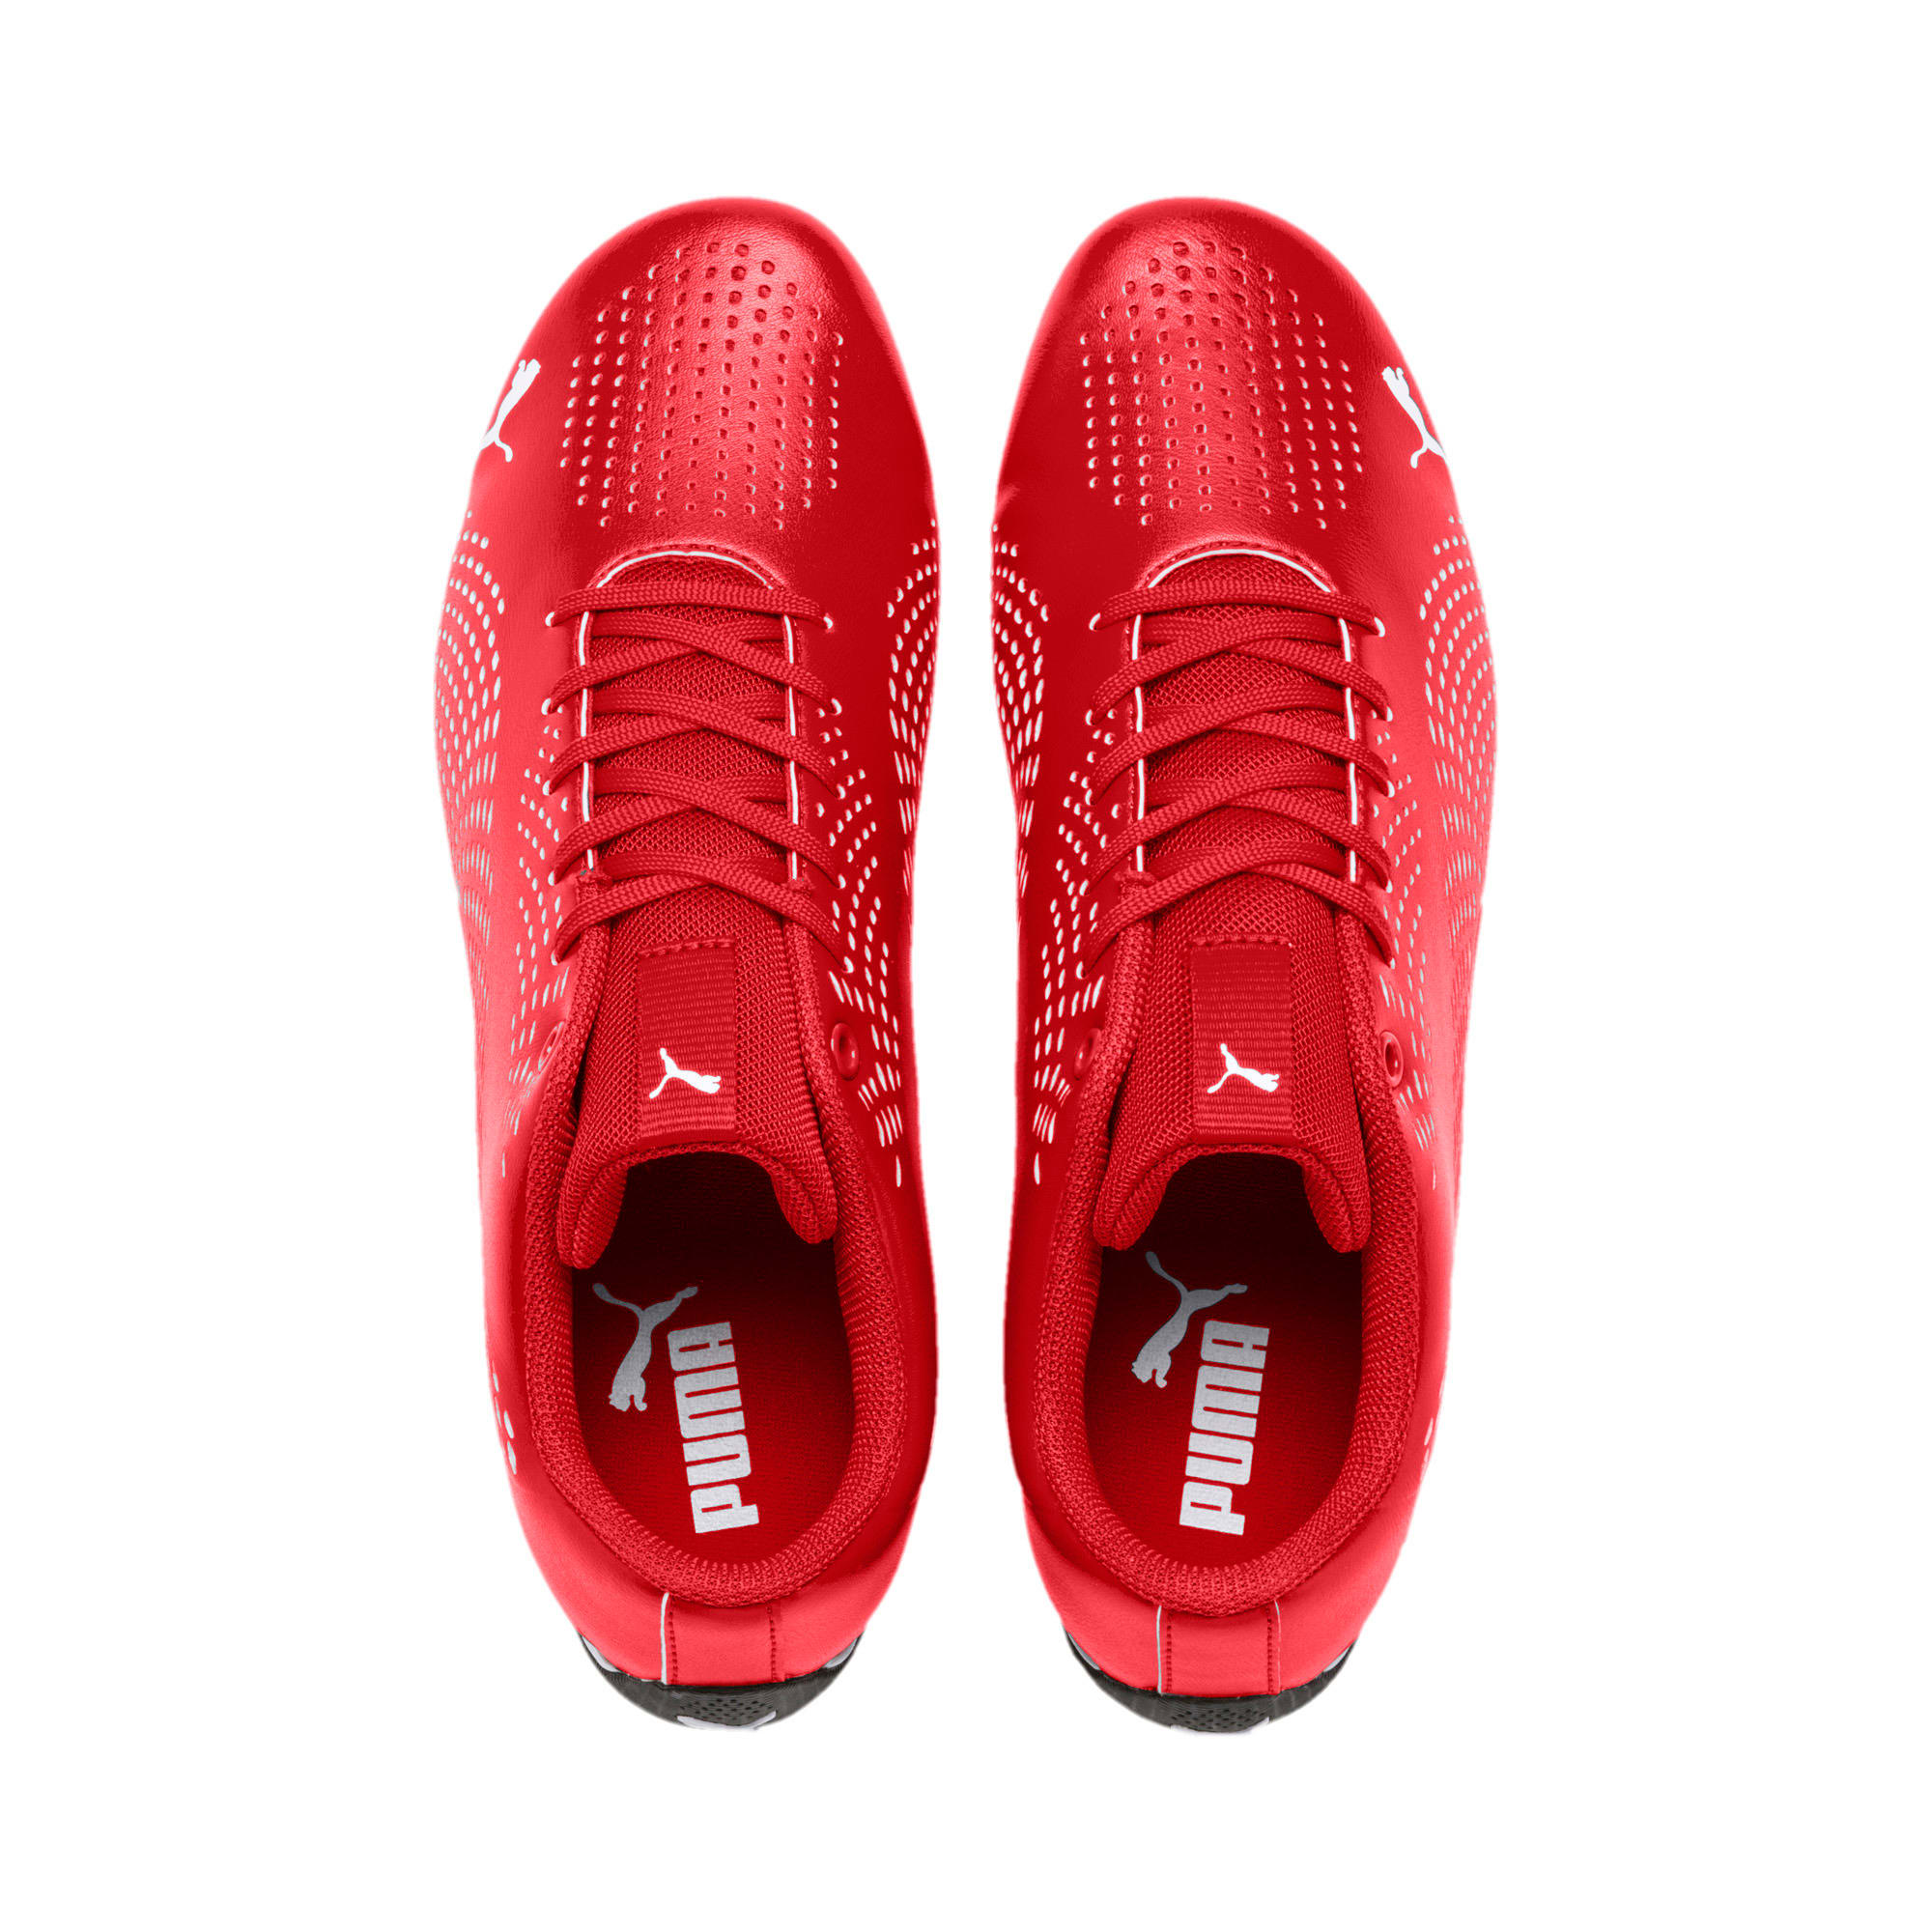 Thumbnail 7 of Ferrari Drift Cat 5 Ultra II Trainers, Rosso Corsa-Puma White, medium